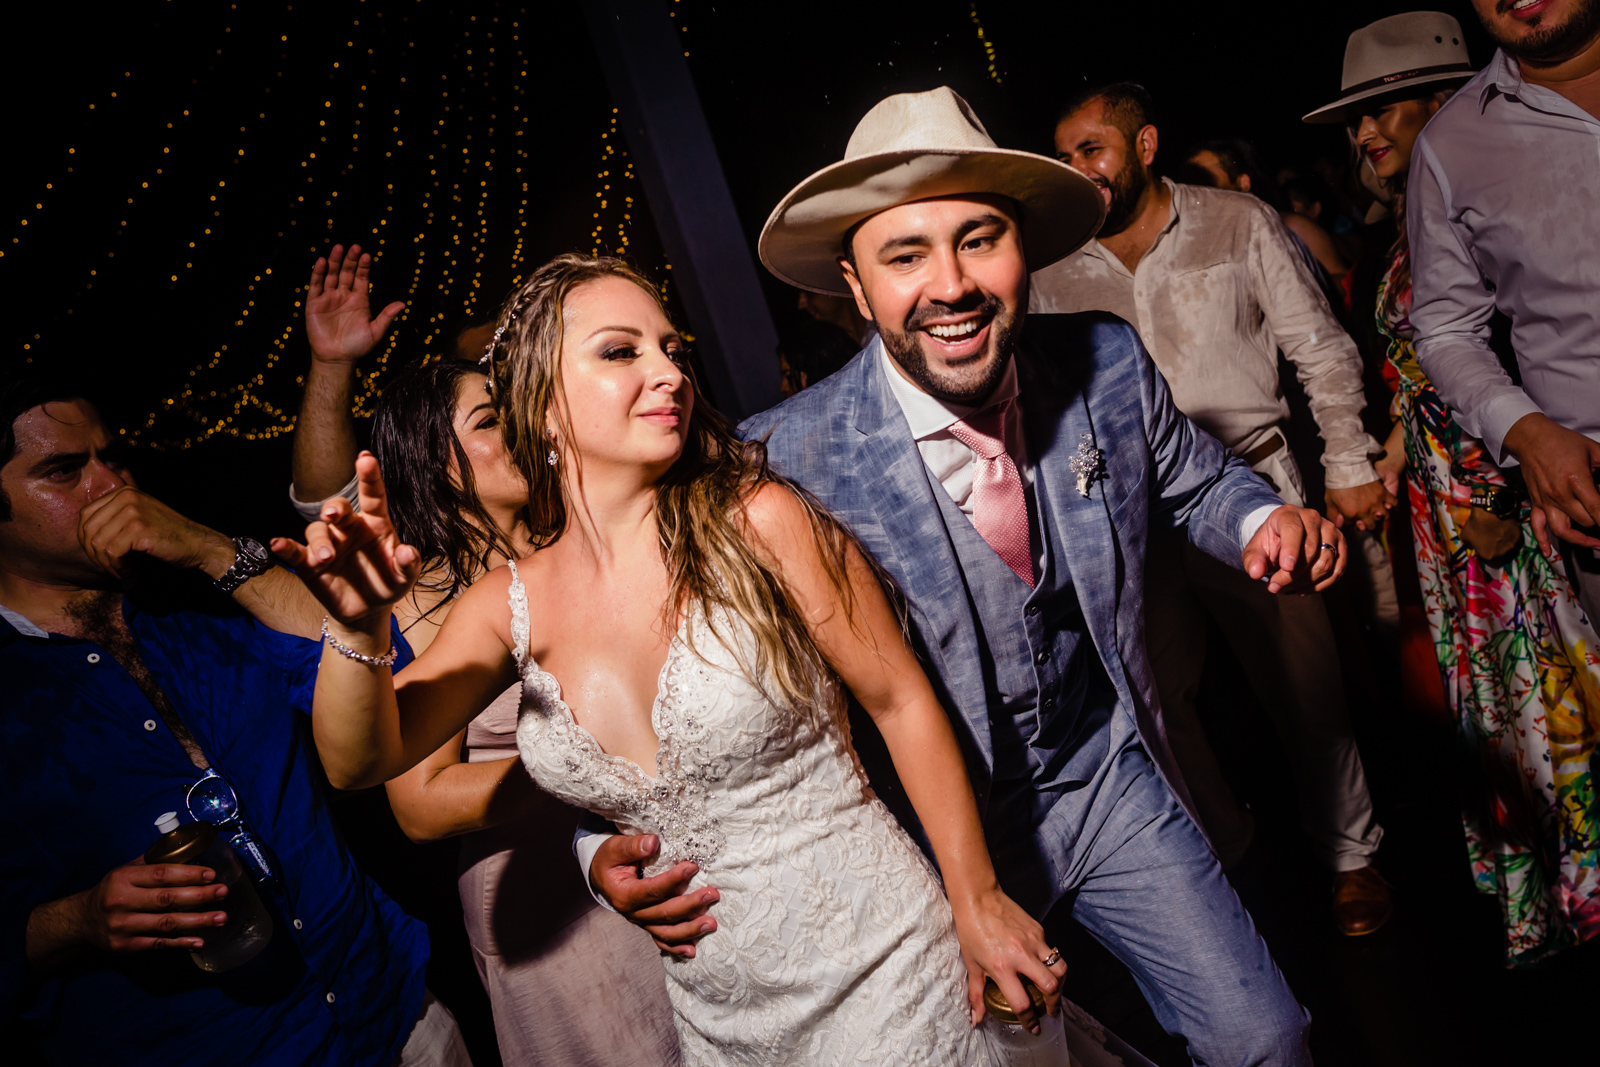 bride and groom dance on the party